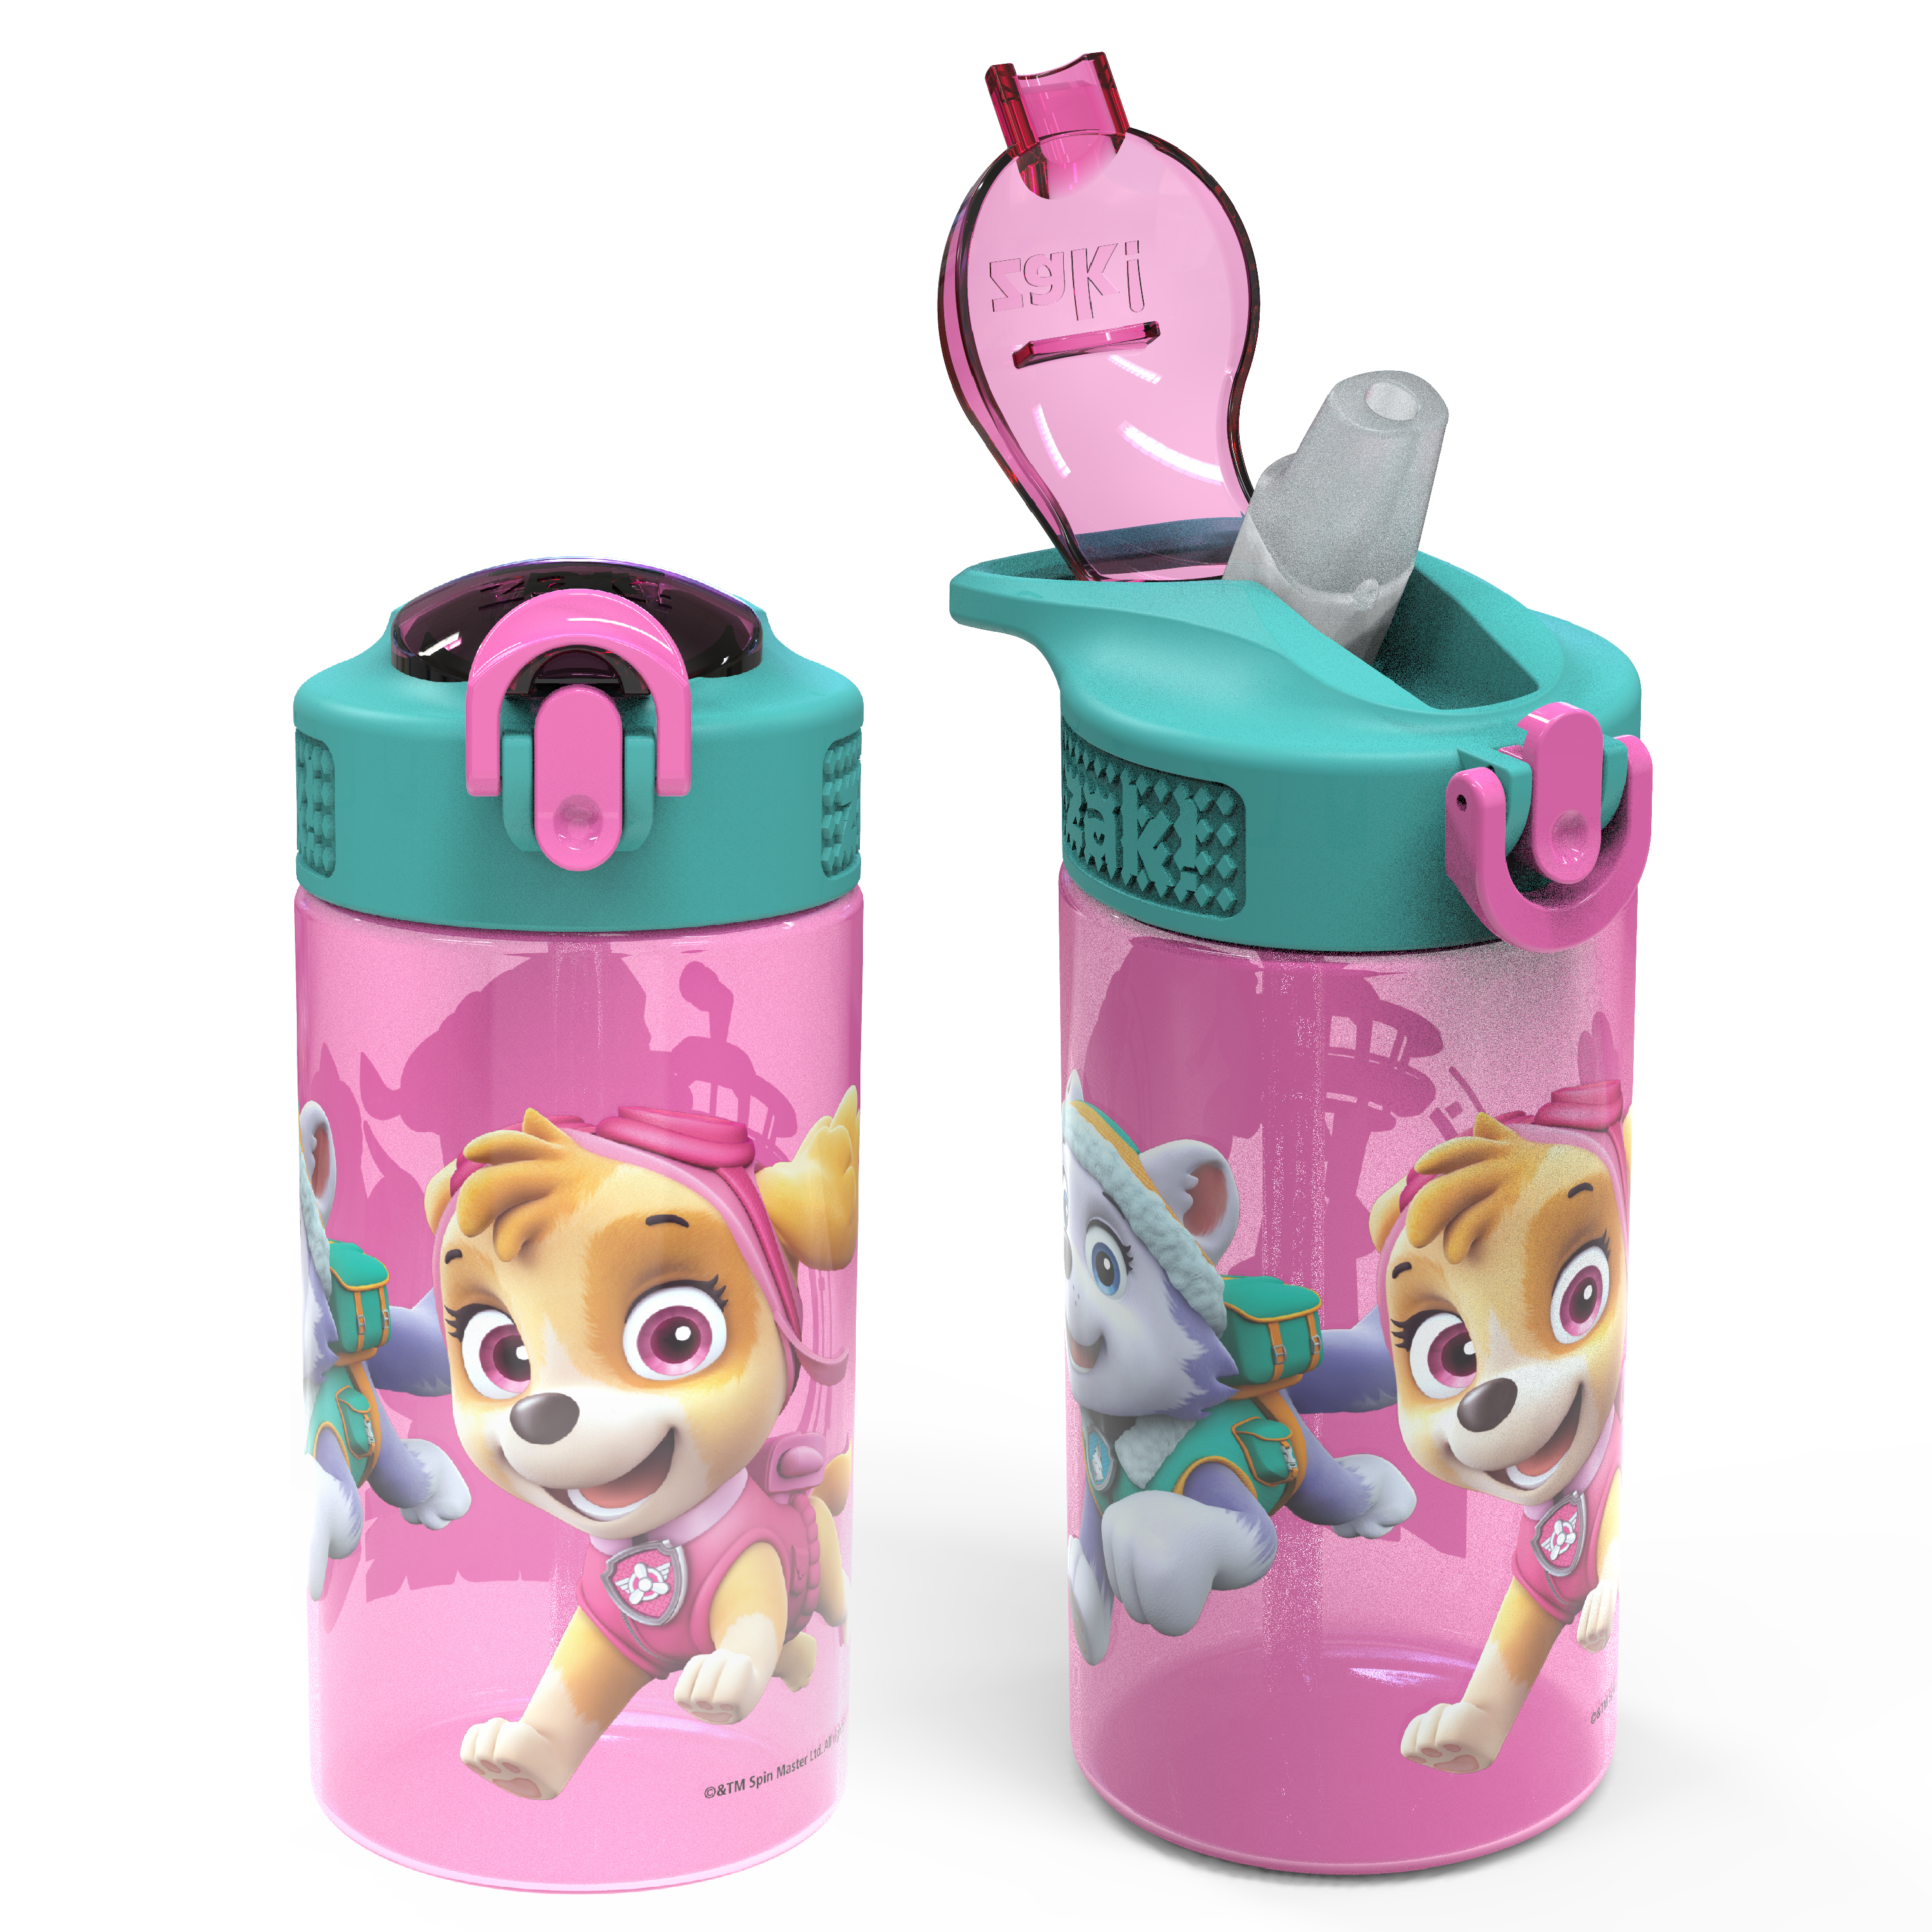 Paw Patrol 16 ounce Reusable Plastic Water Bottle with Straw, Skye, 2-piece set slideshow image 1